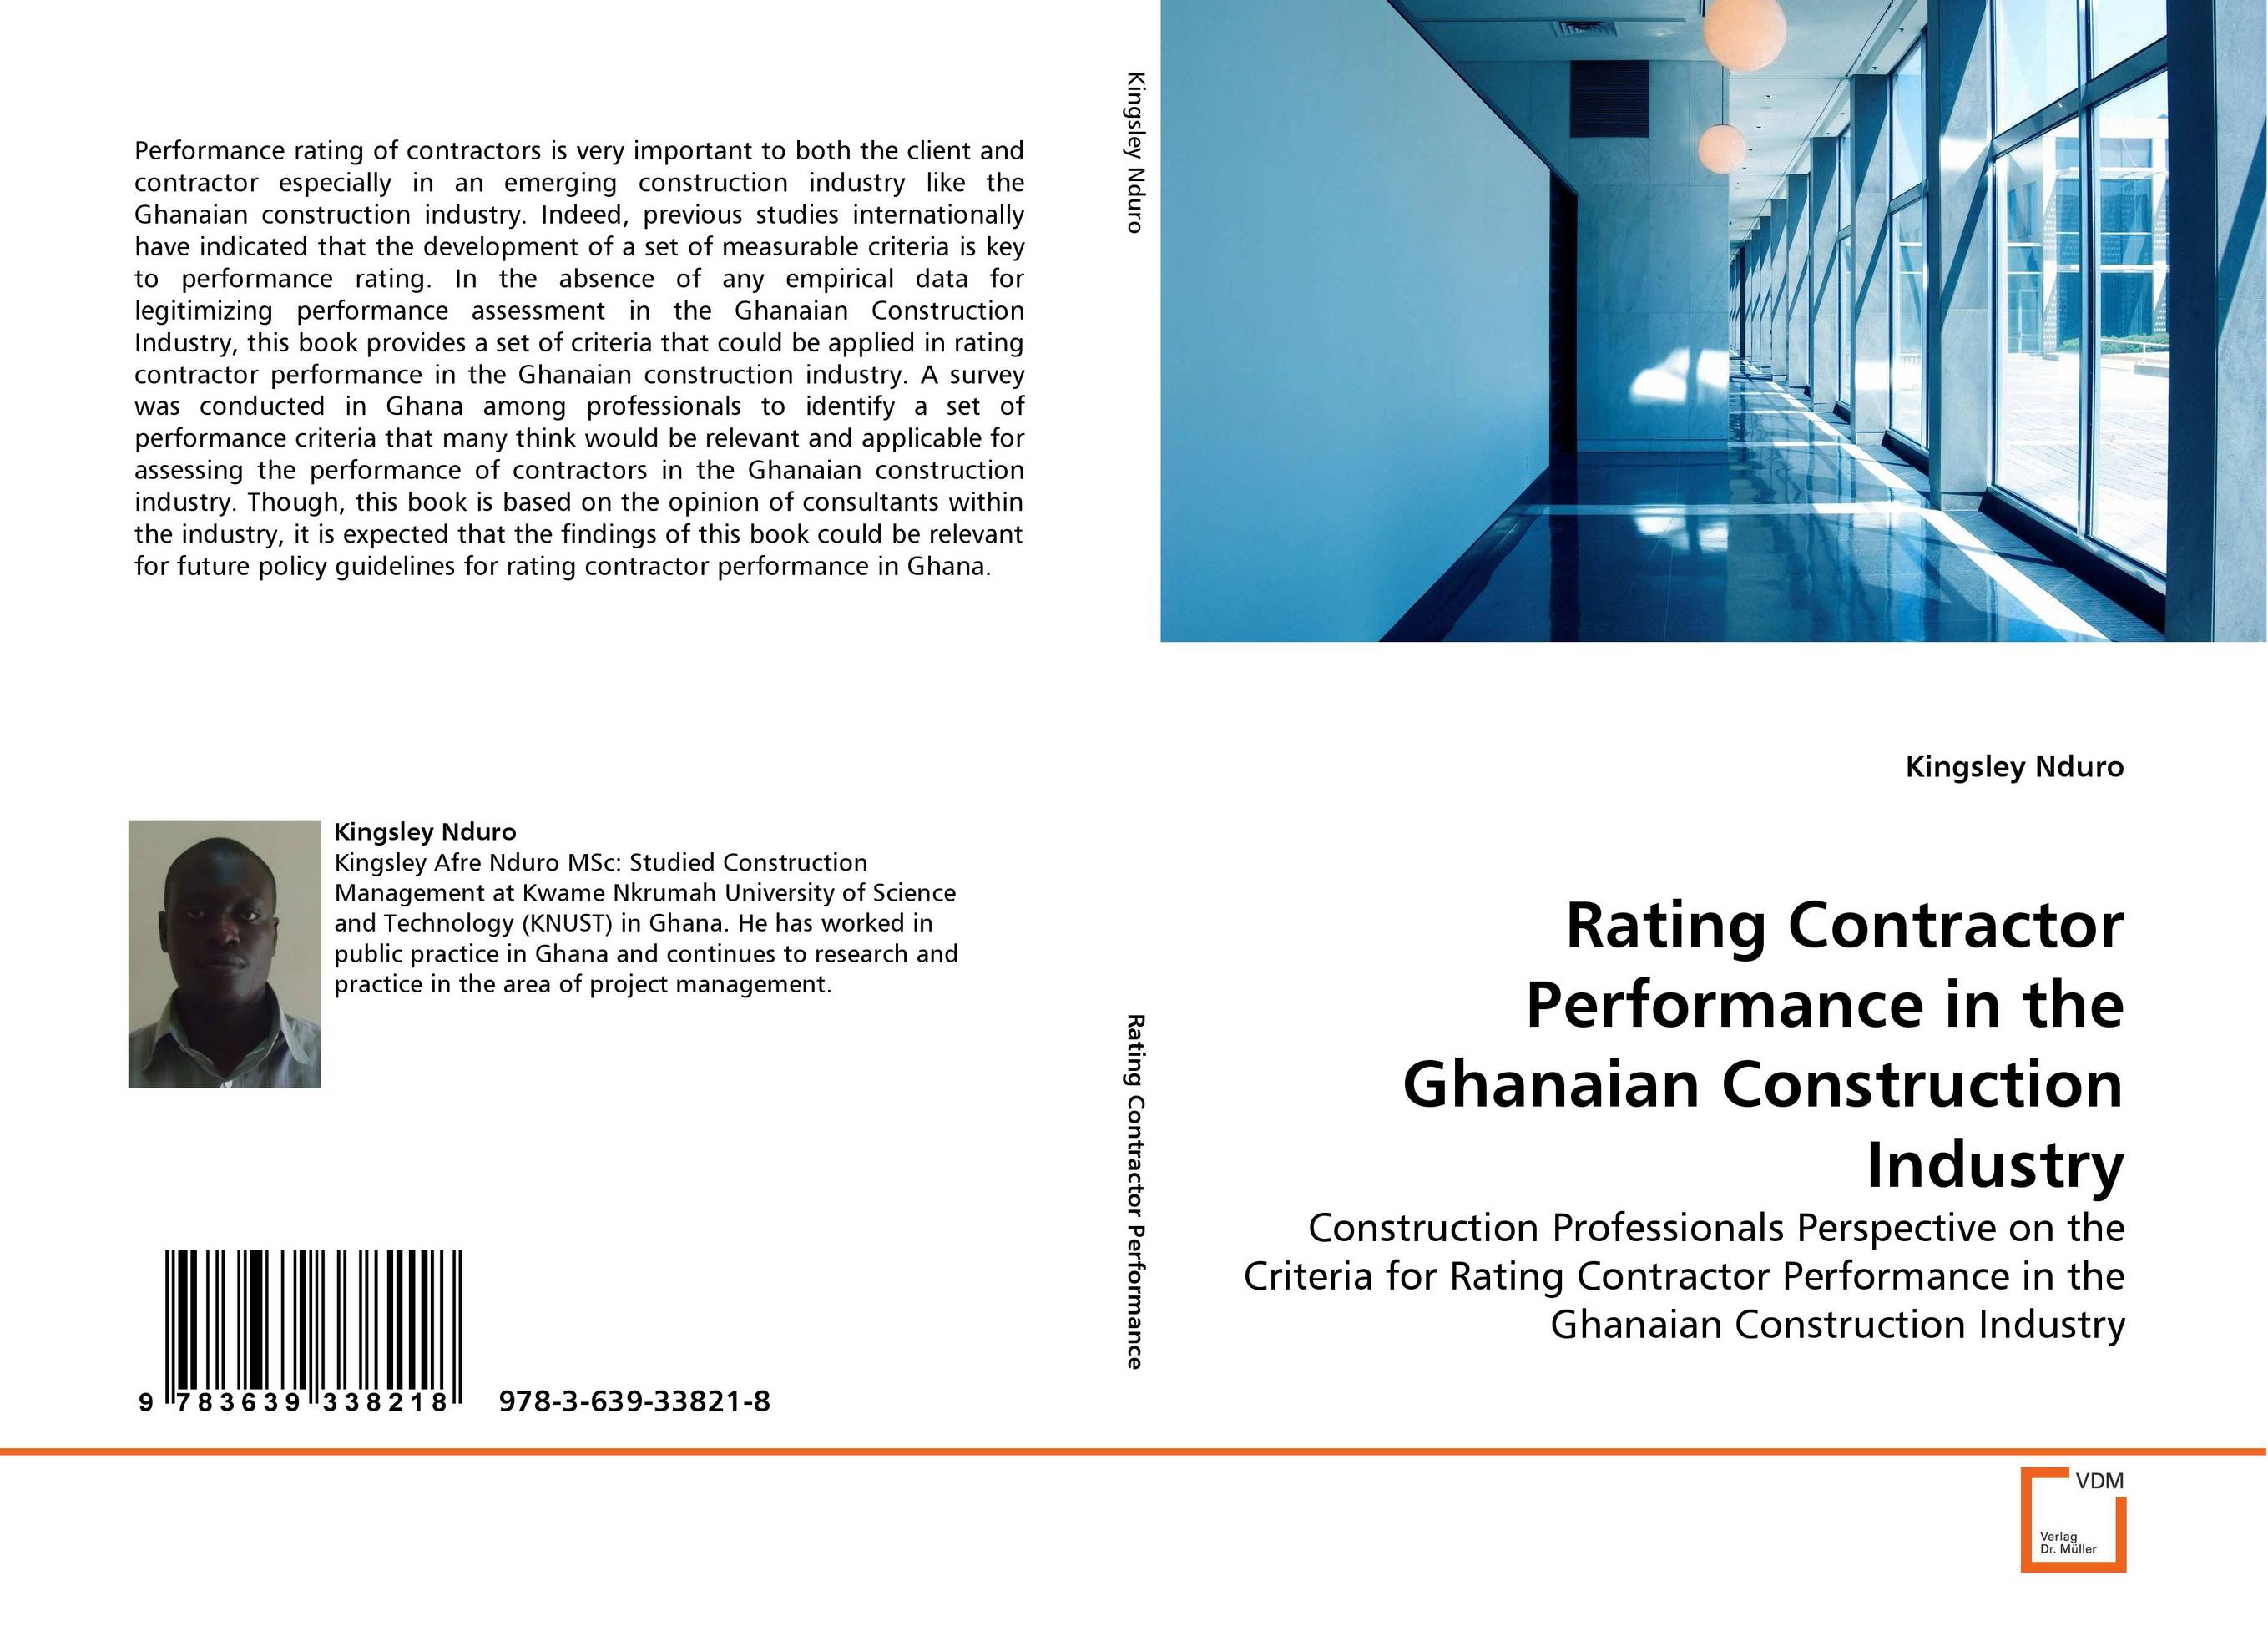 Rating Contractor Performance in the Ghanaian Construction Industry